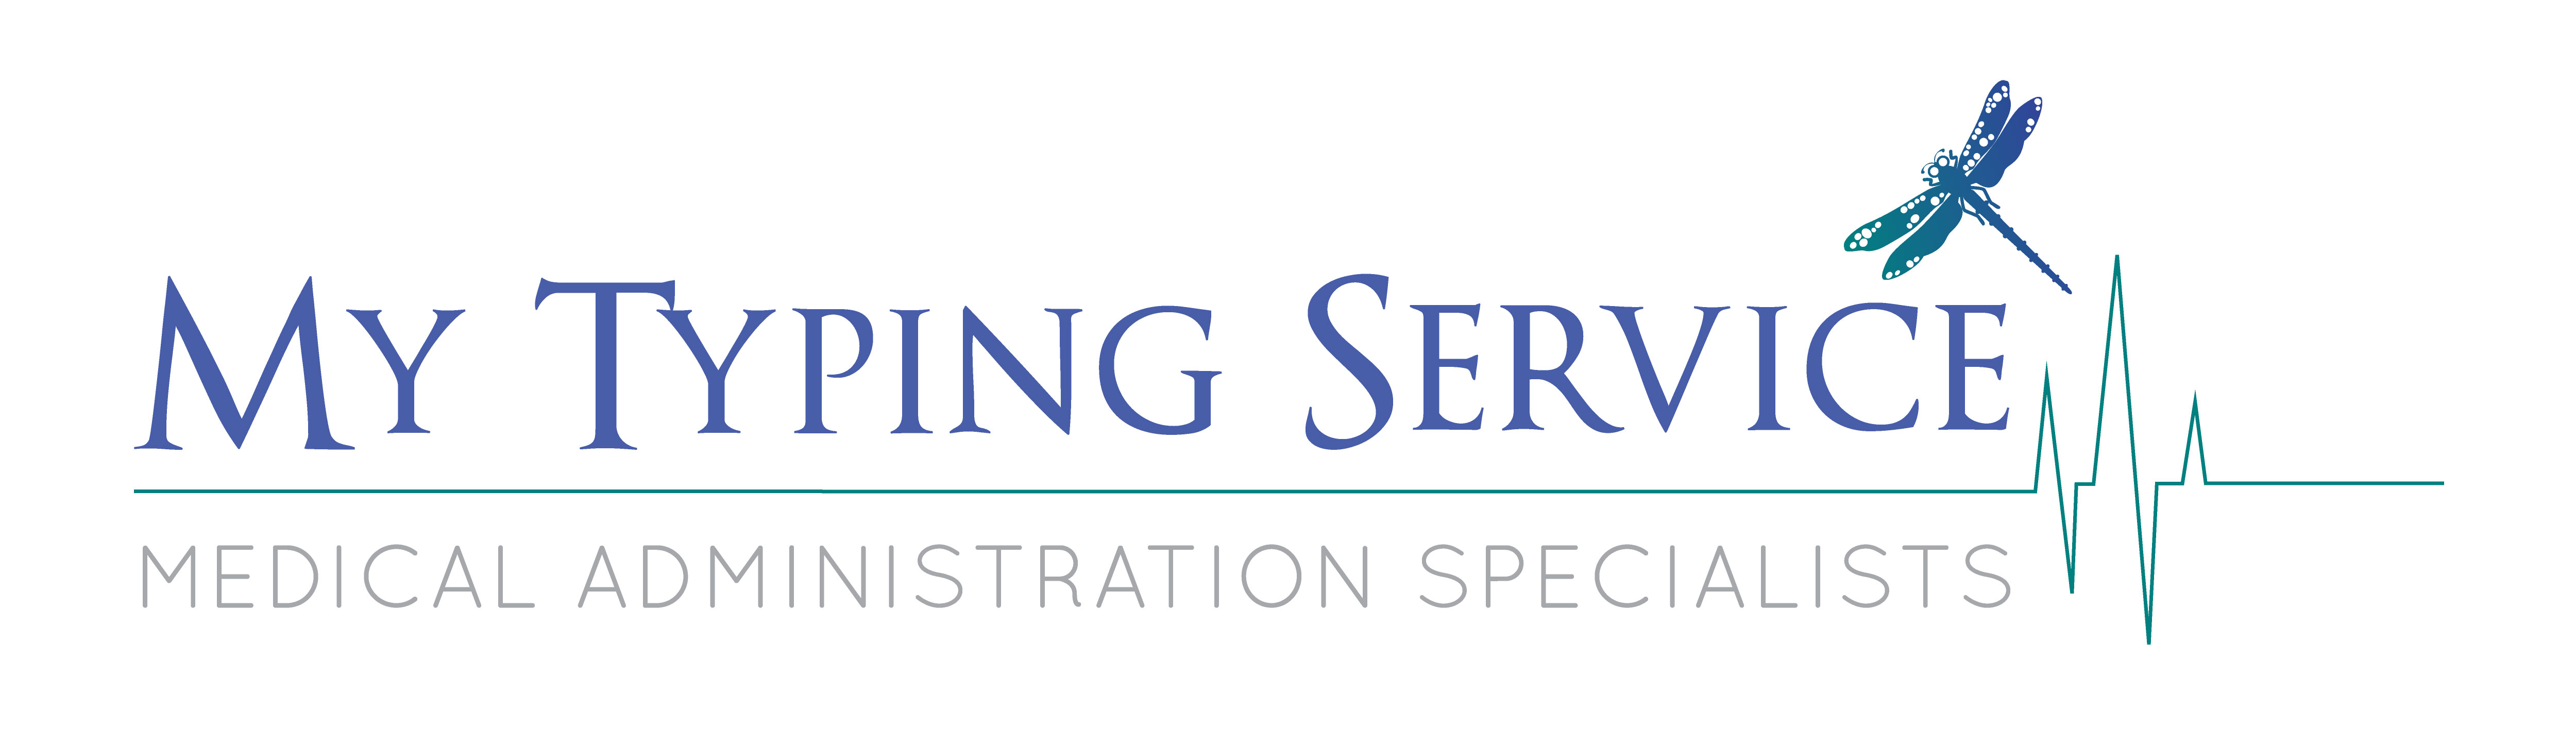 expert typing services for the medical profession